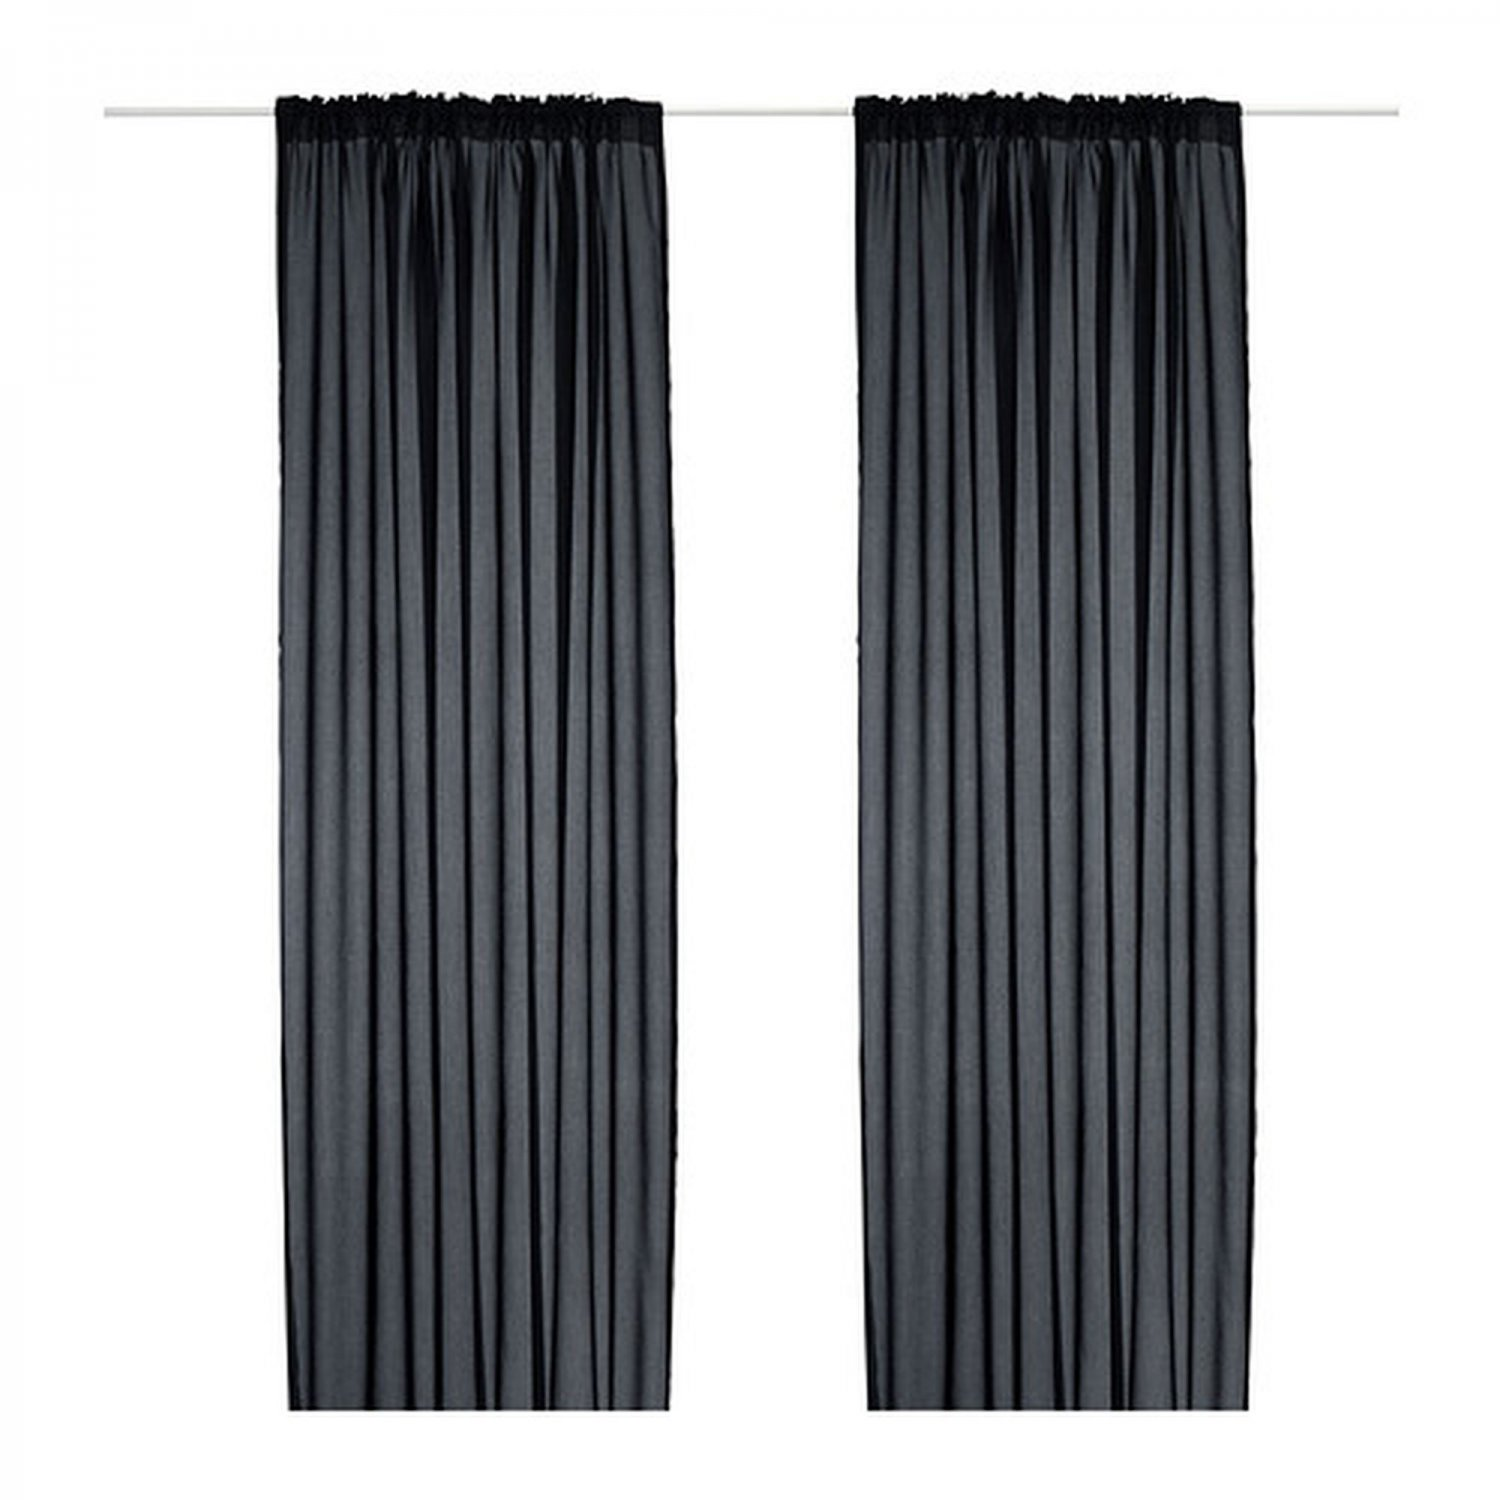 Ikea Vivan Curtains Drapes Black 2 Panels